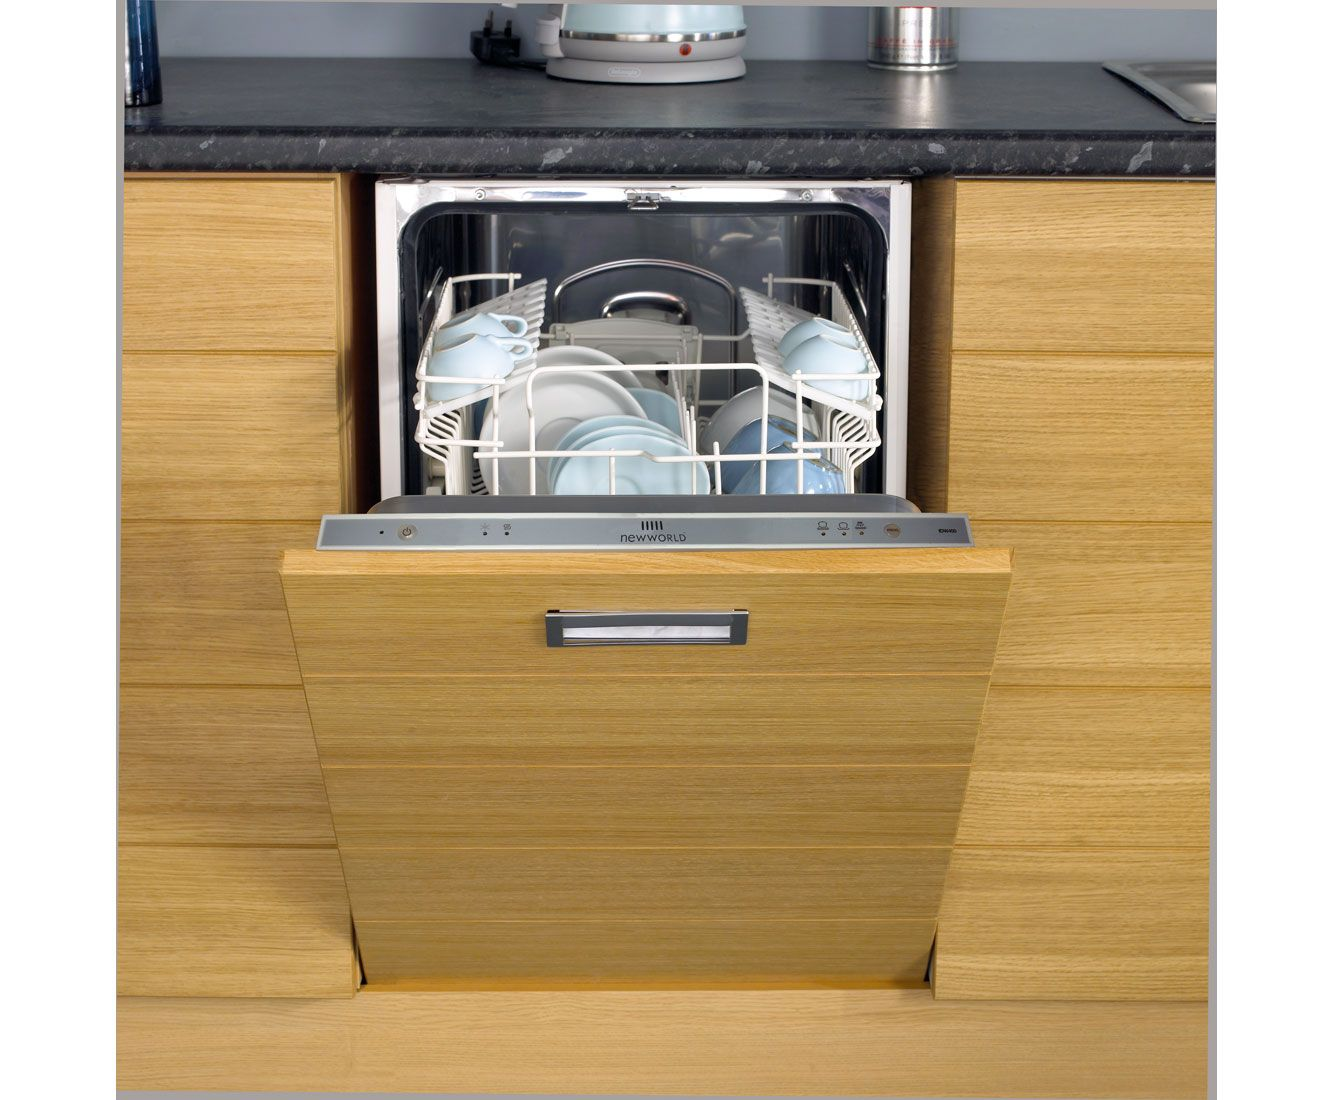 newworld integrated slimline dishwasher   nwdw45mk2   ao com newworld integrated slimline dishwasher   nwdw45mk2   ao com      rh   pinterest com